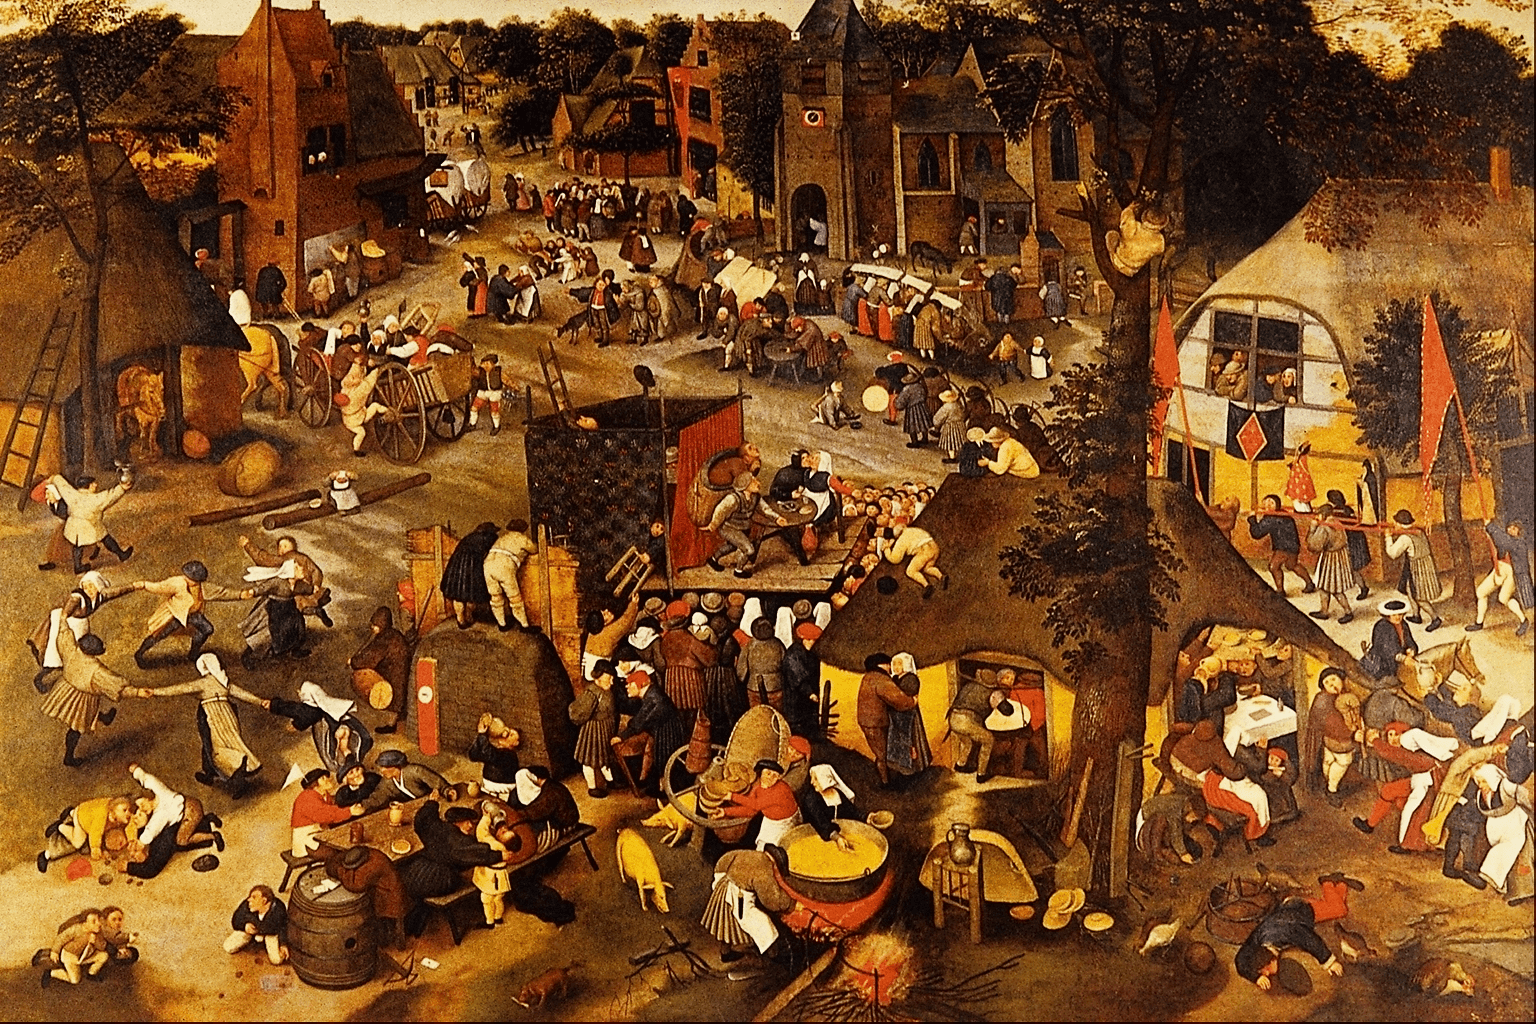 Flemish_Fair_-_Pieter_Brueghel_the_Younger